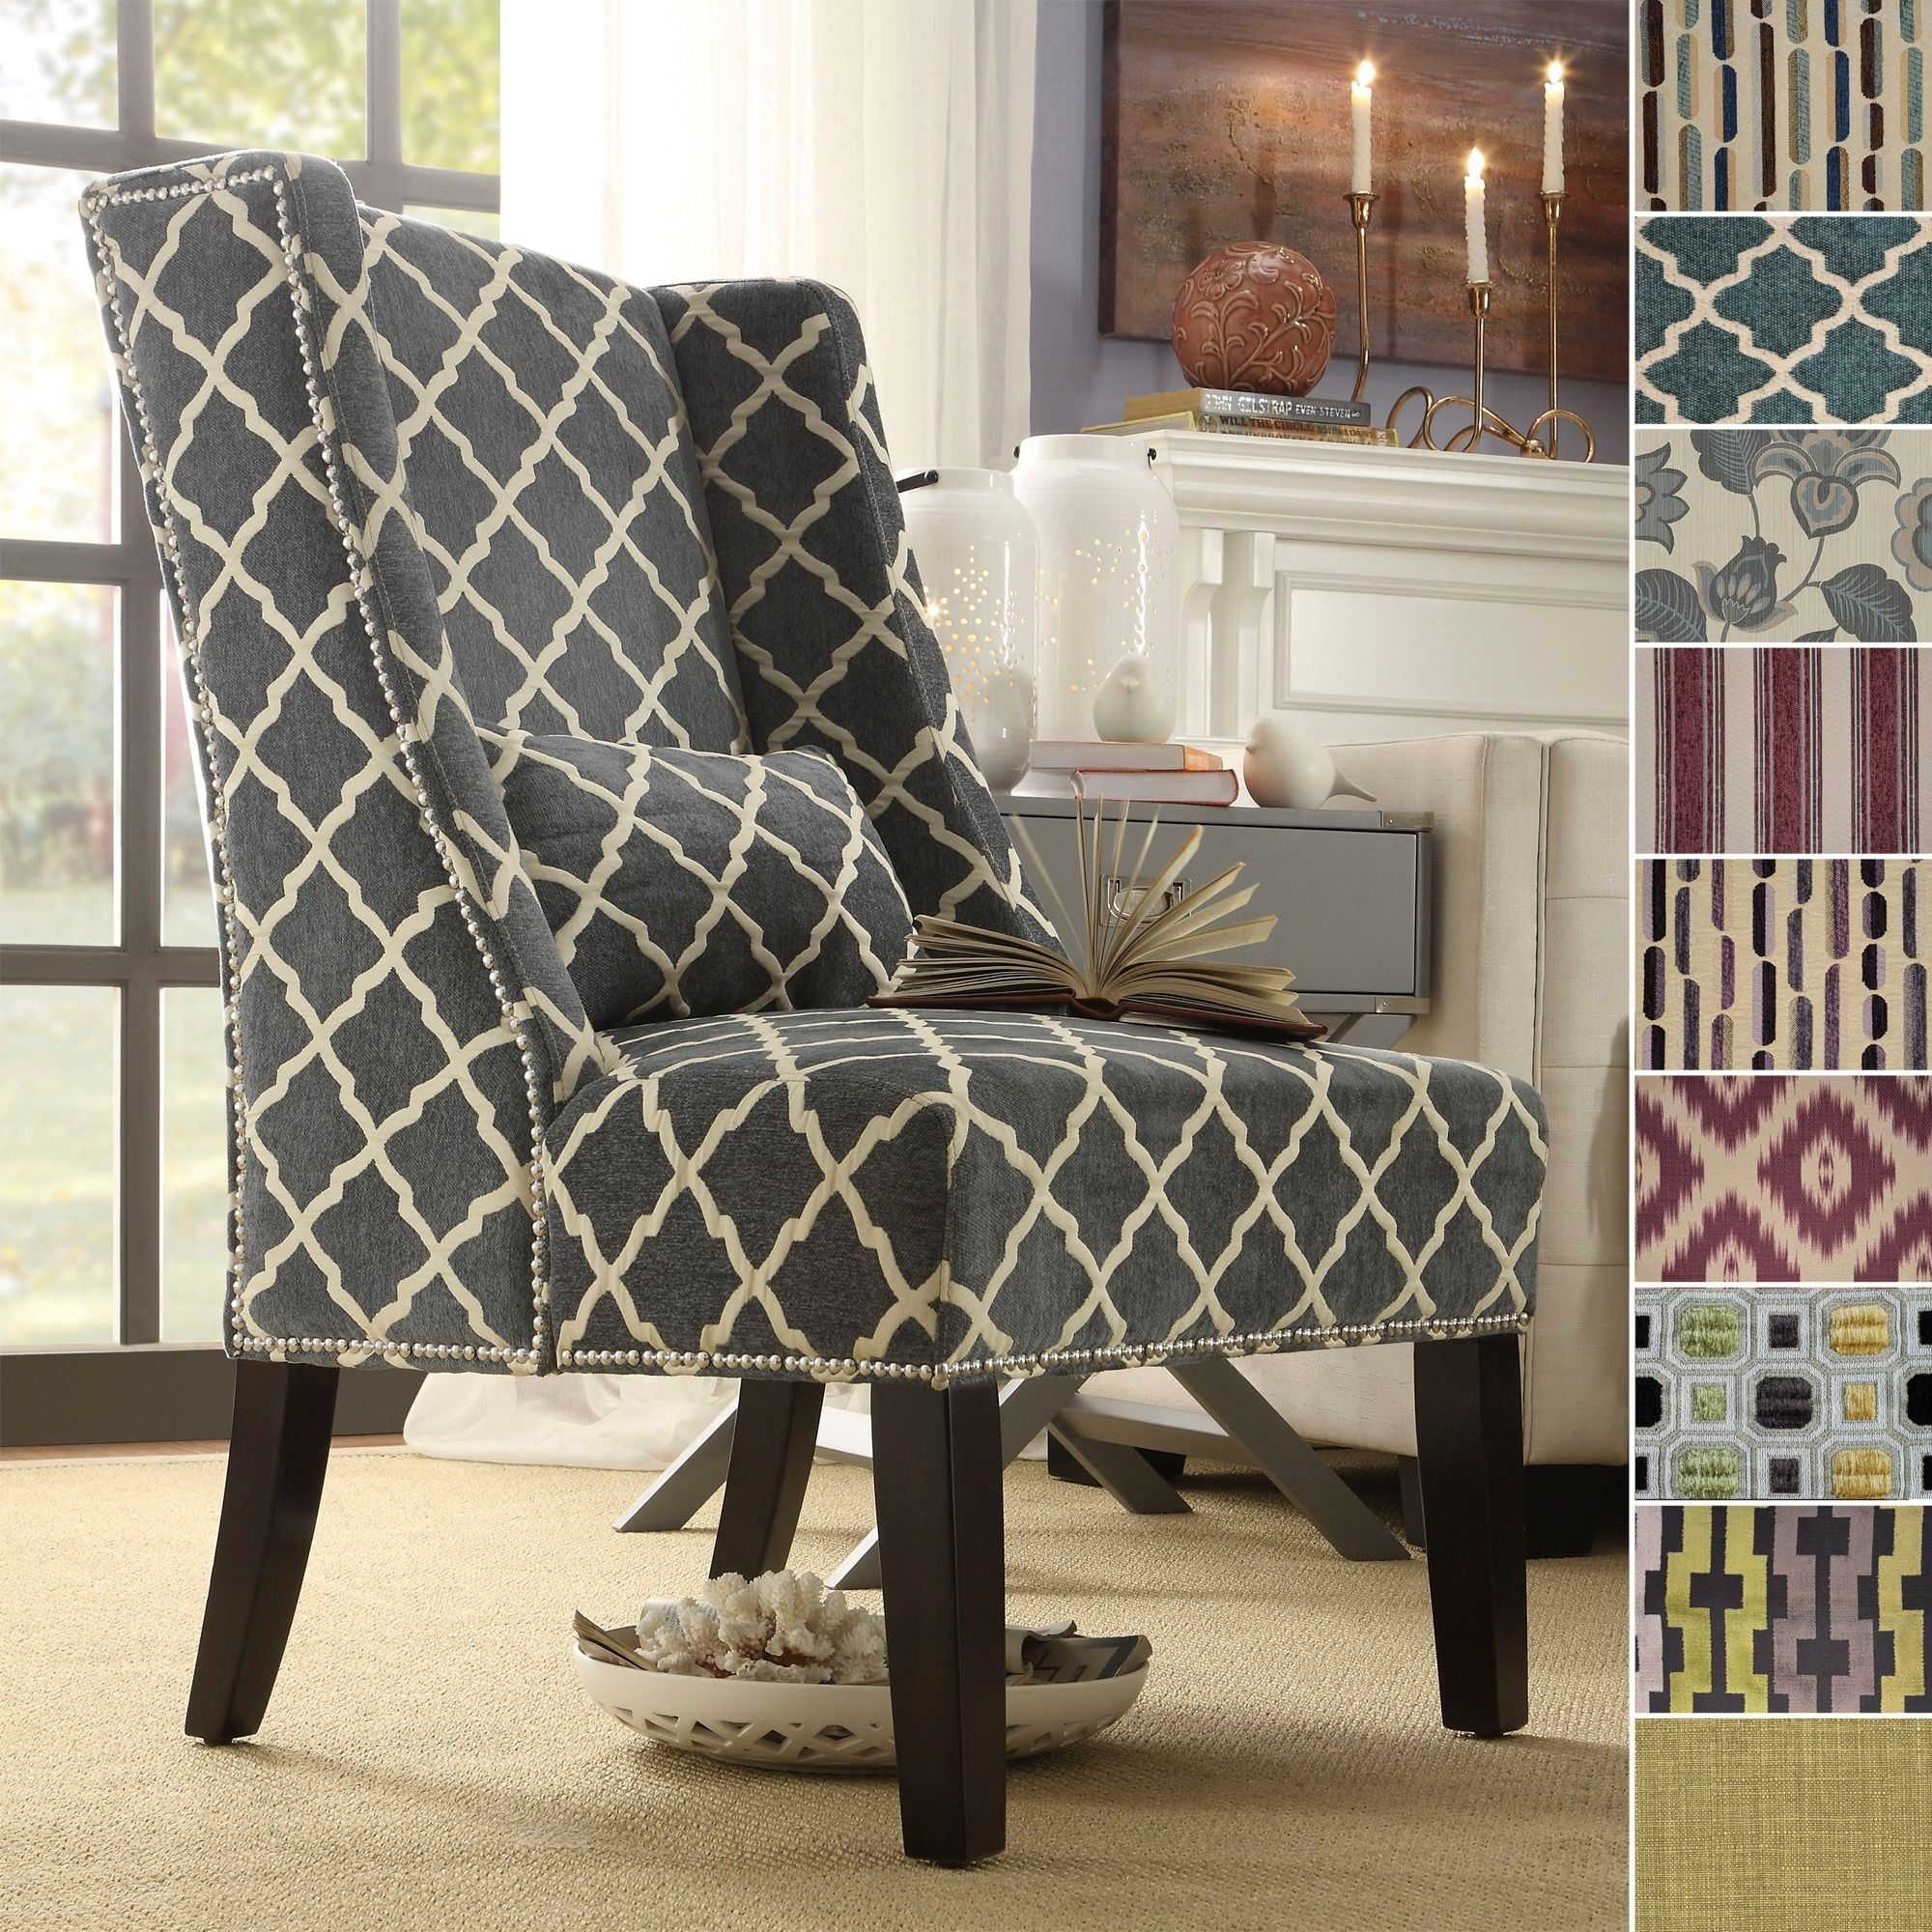 Live In The Lap Of Luxury With This Beautifully Designed Accent Chair With  Wing Back And